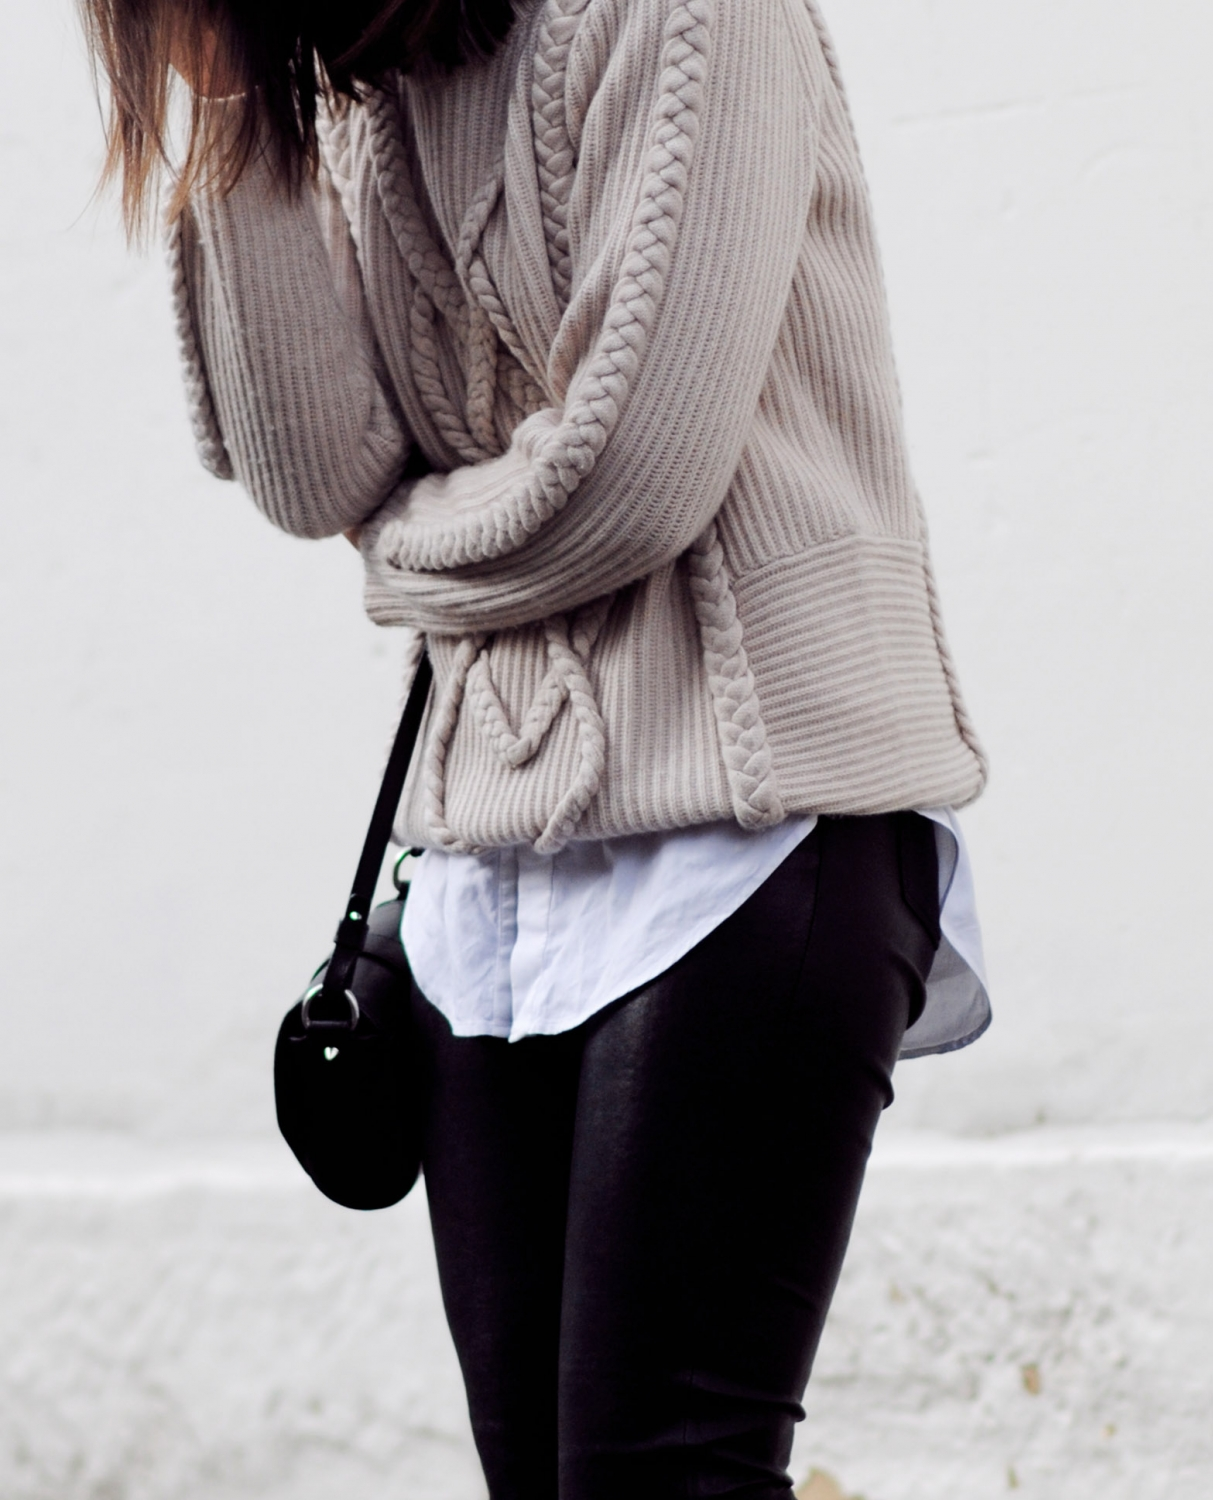 harper and harley_cable knit_nude_leather_blogger_7